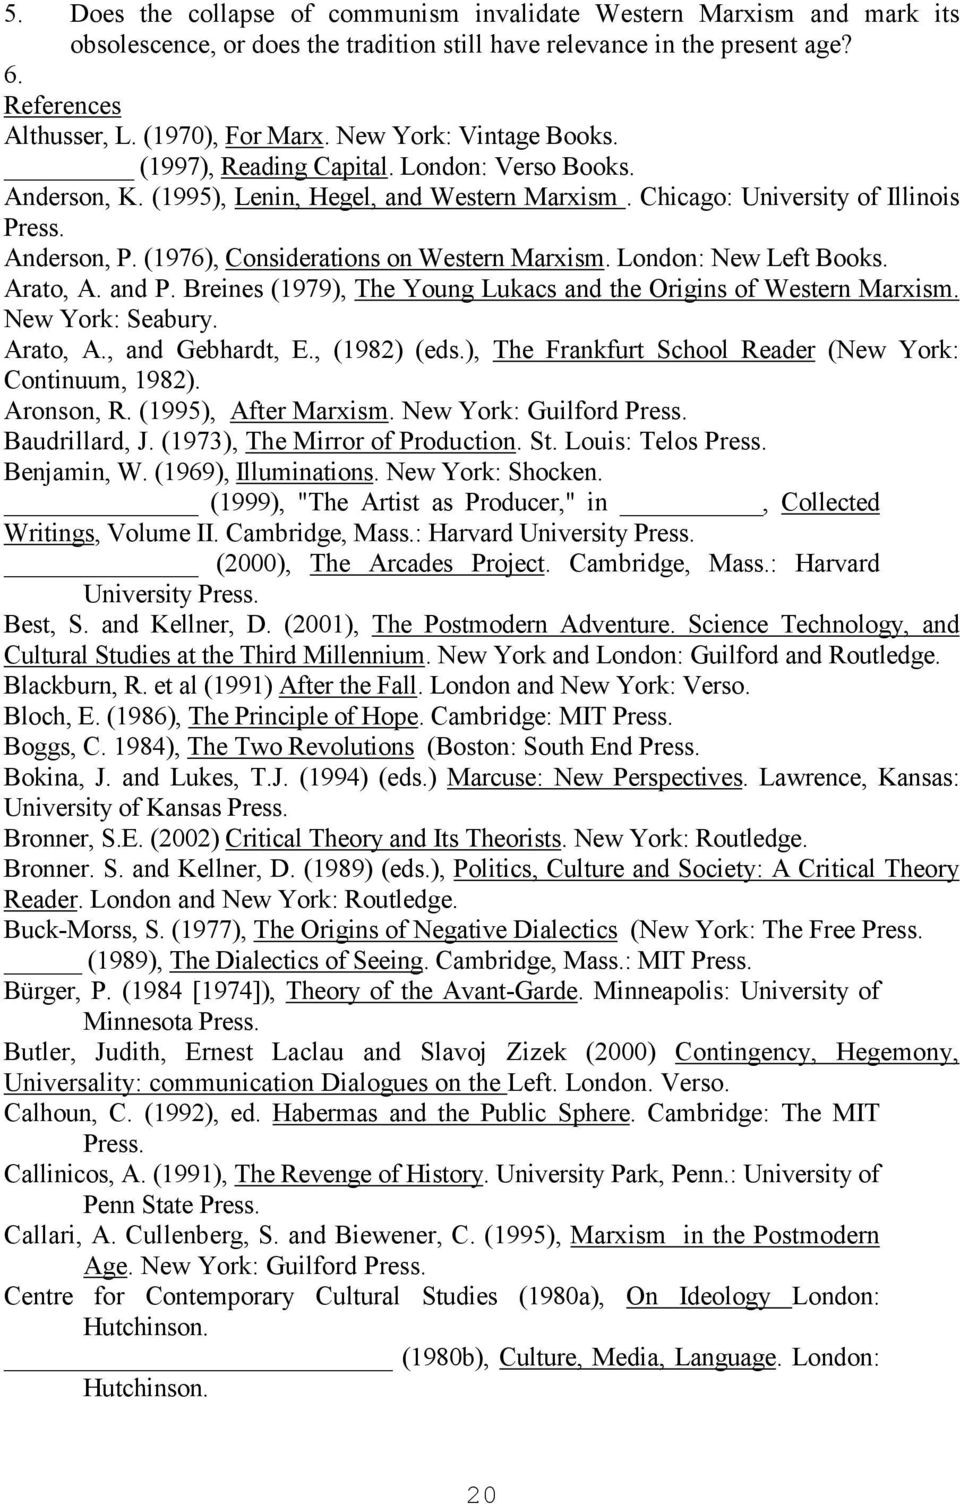 (1976), Considerations on Western Marxism. London: New Left Books. Arato, A. and P. Breines (1979), The Young Lukacs and the Origins of Western Marxism. New York: Seabury. Arato, A., and Gebhardt, E.